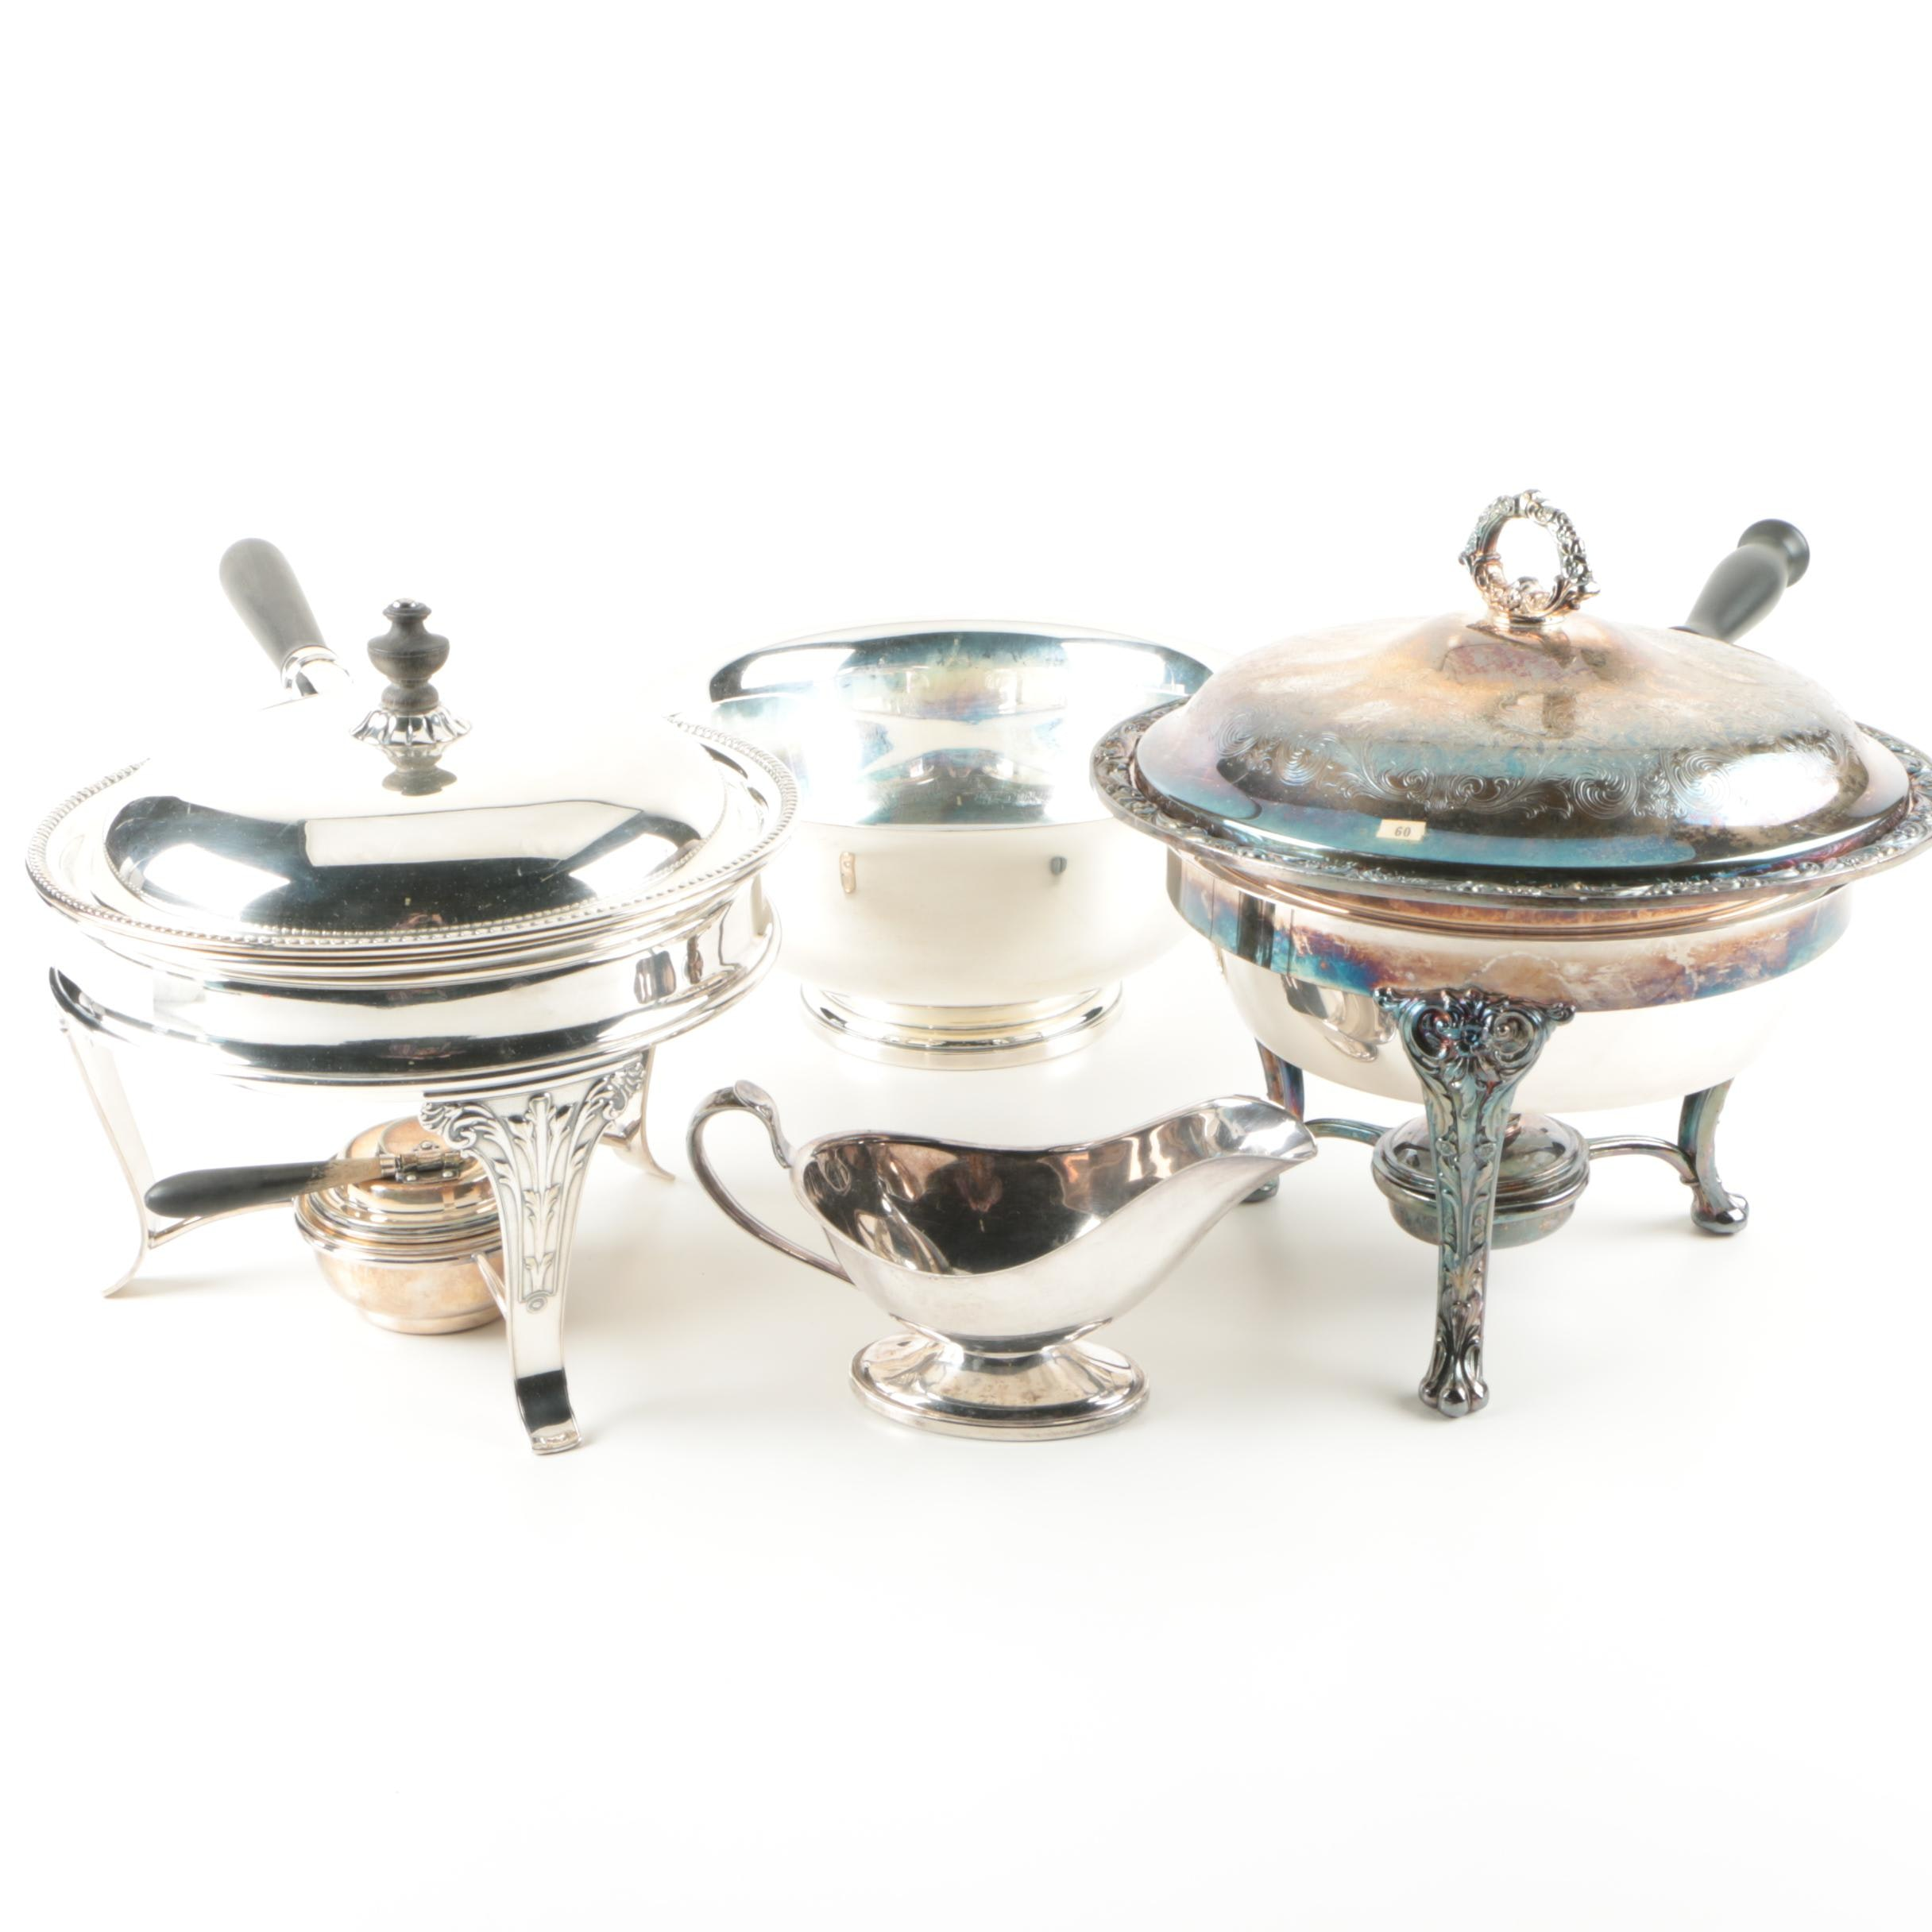 Gorham Silver-Plated Chafing Dishes with Other Serving Ware